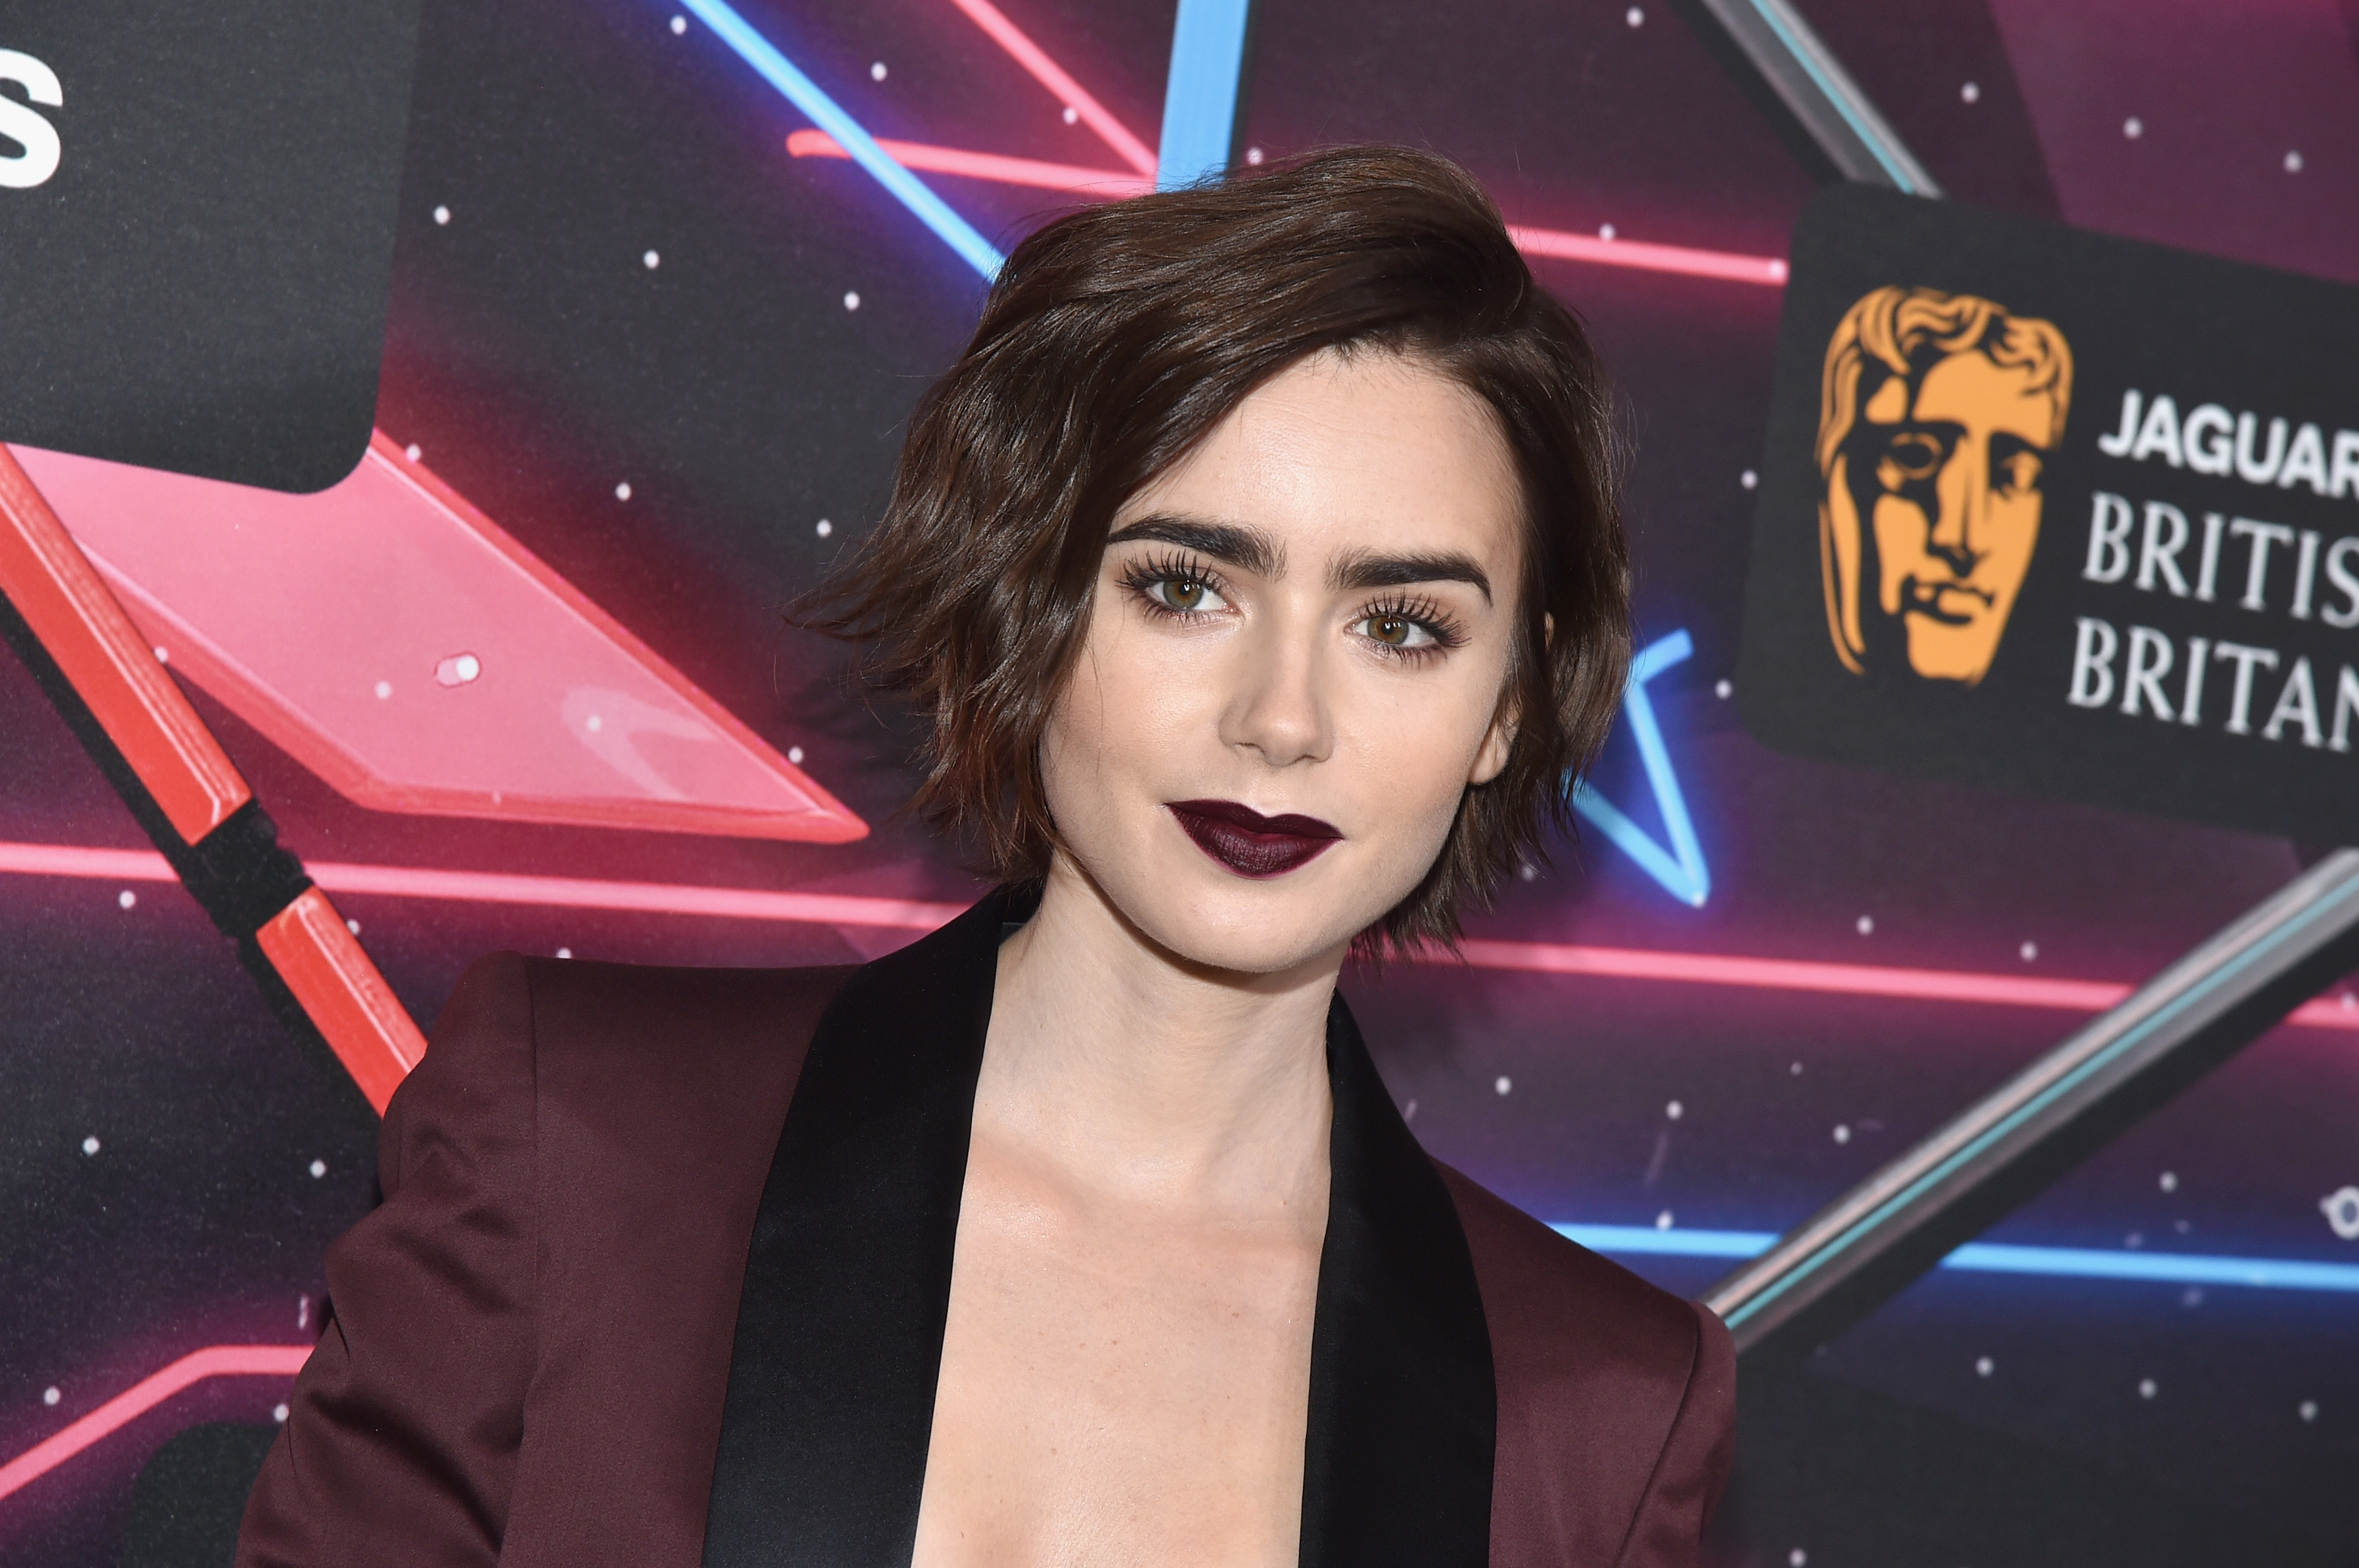 Red Alert: Lily Collins Debuts Bomb Blunt Bangs